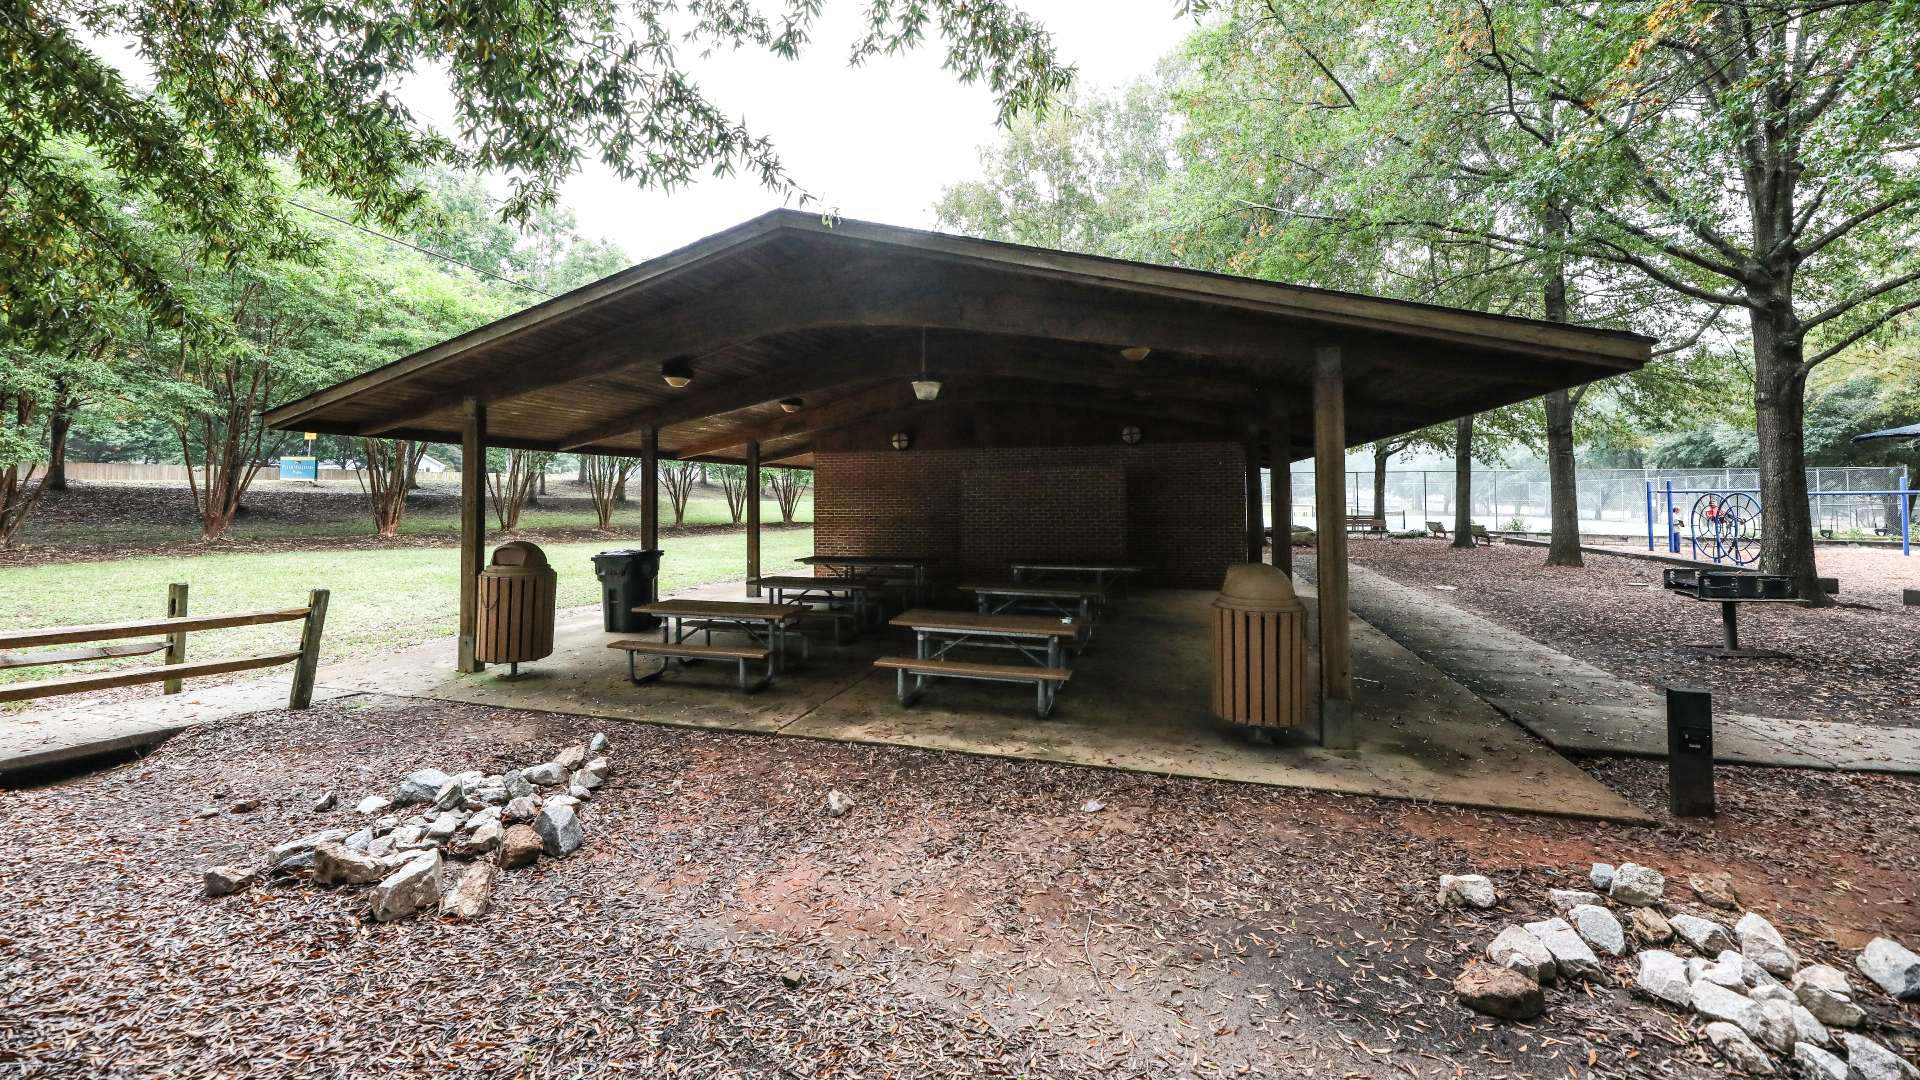 The picnic shelter at Williams Park with multiple tables